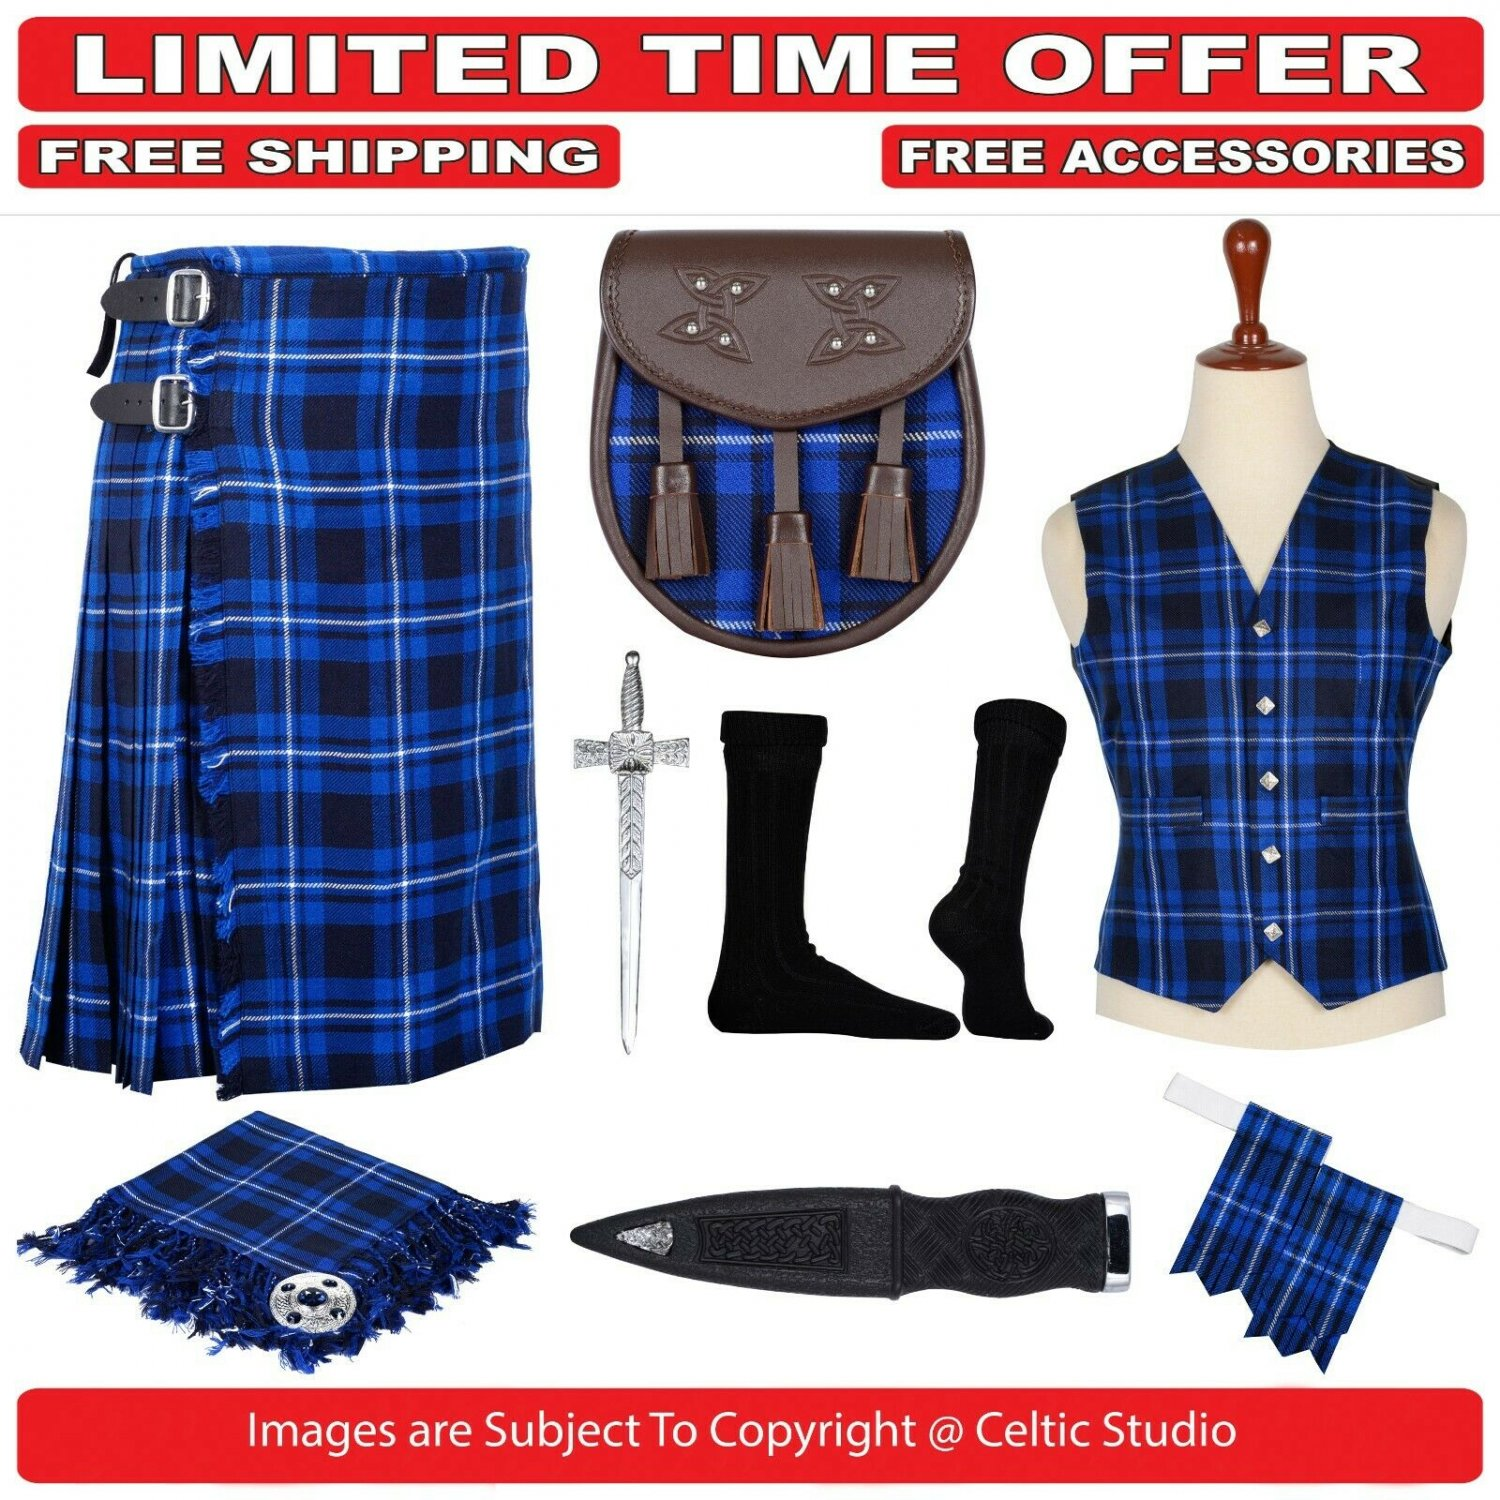 36 size Ramsey Blue Scottish Traditional Tartan Kilt With Free Shipping and 9 Accessories